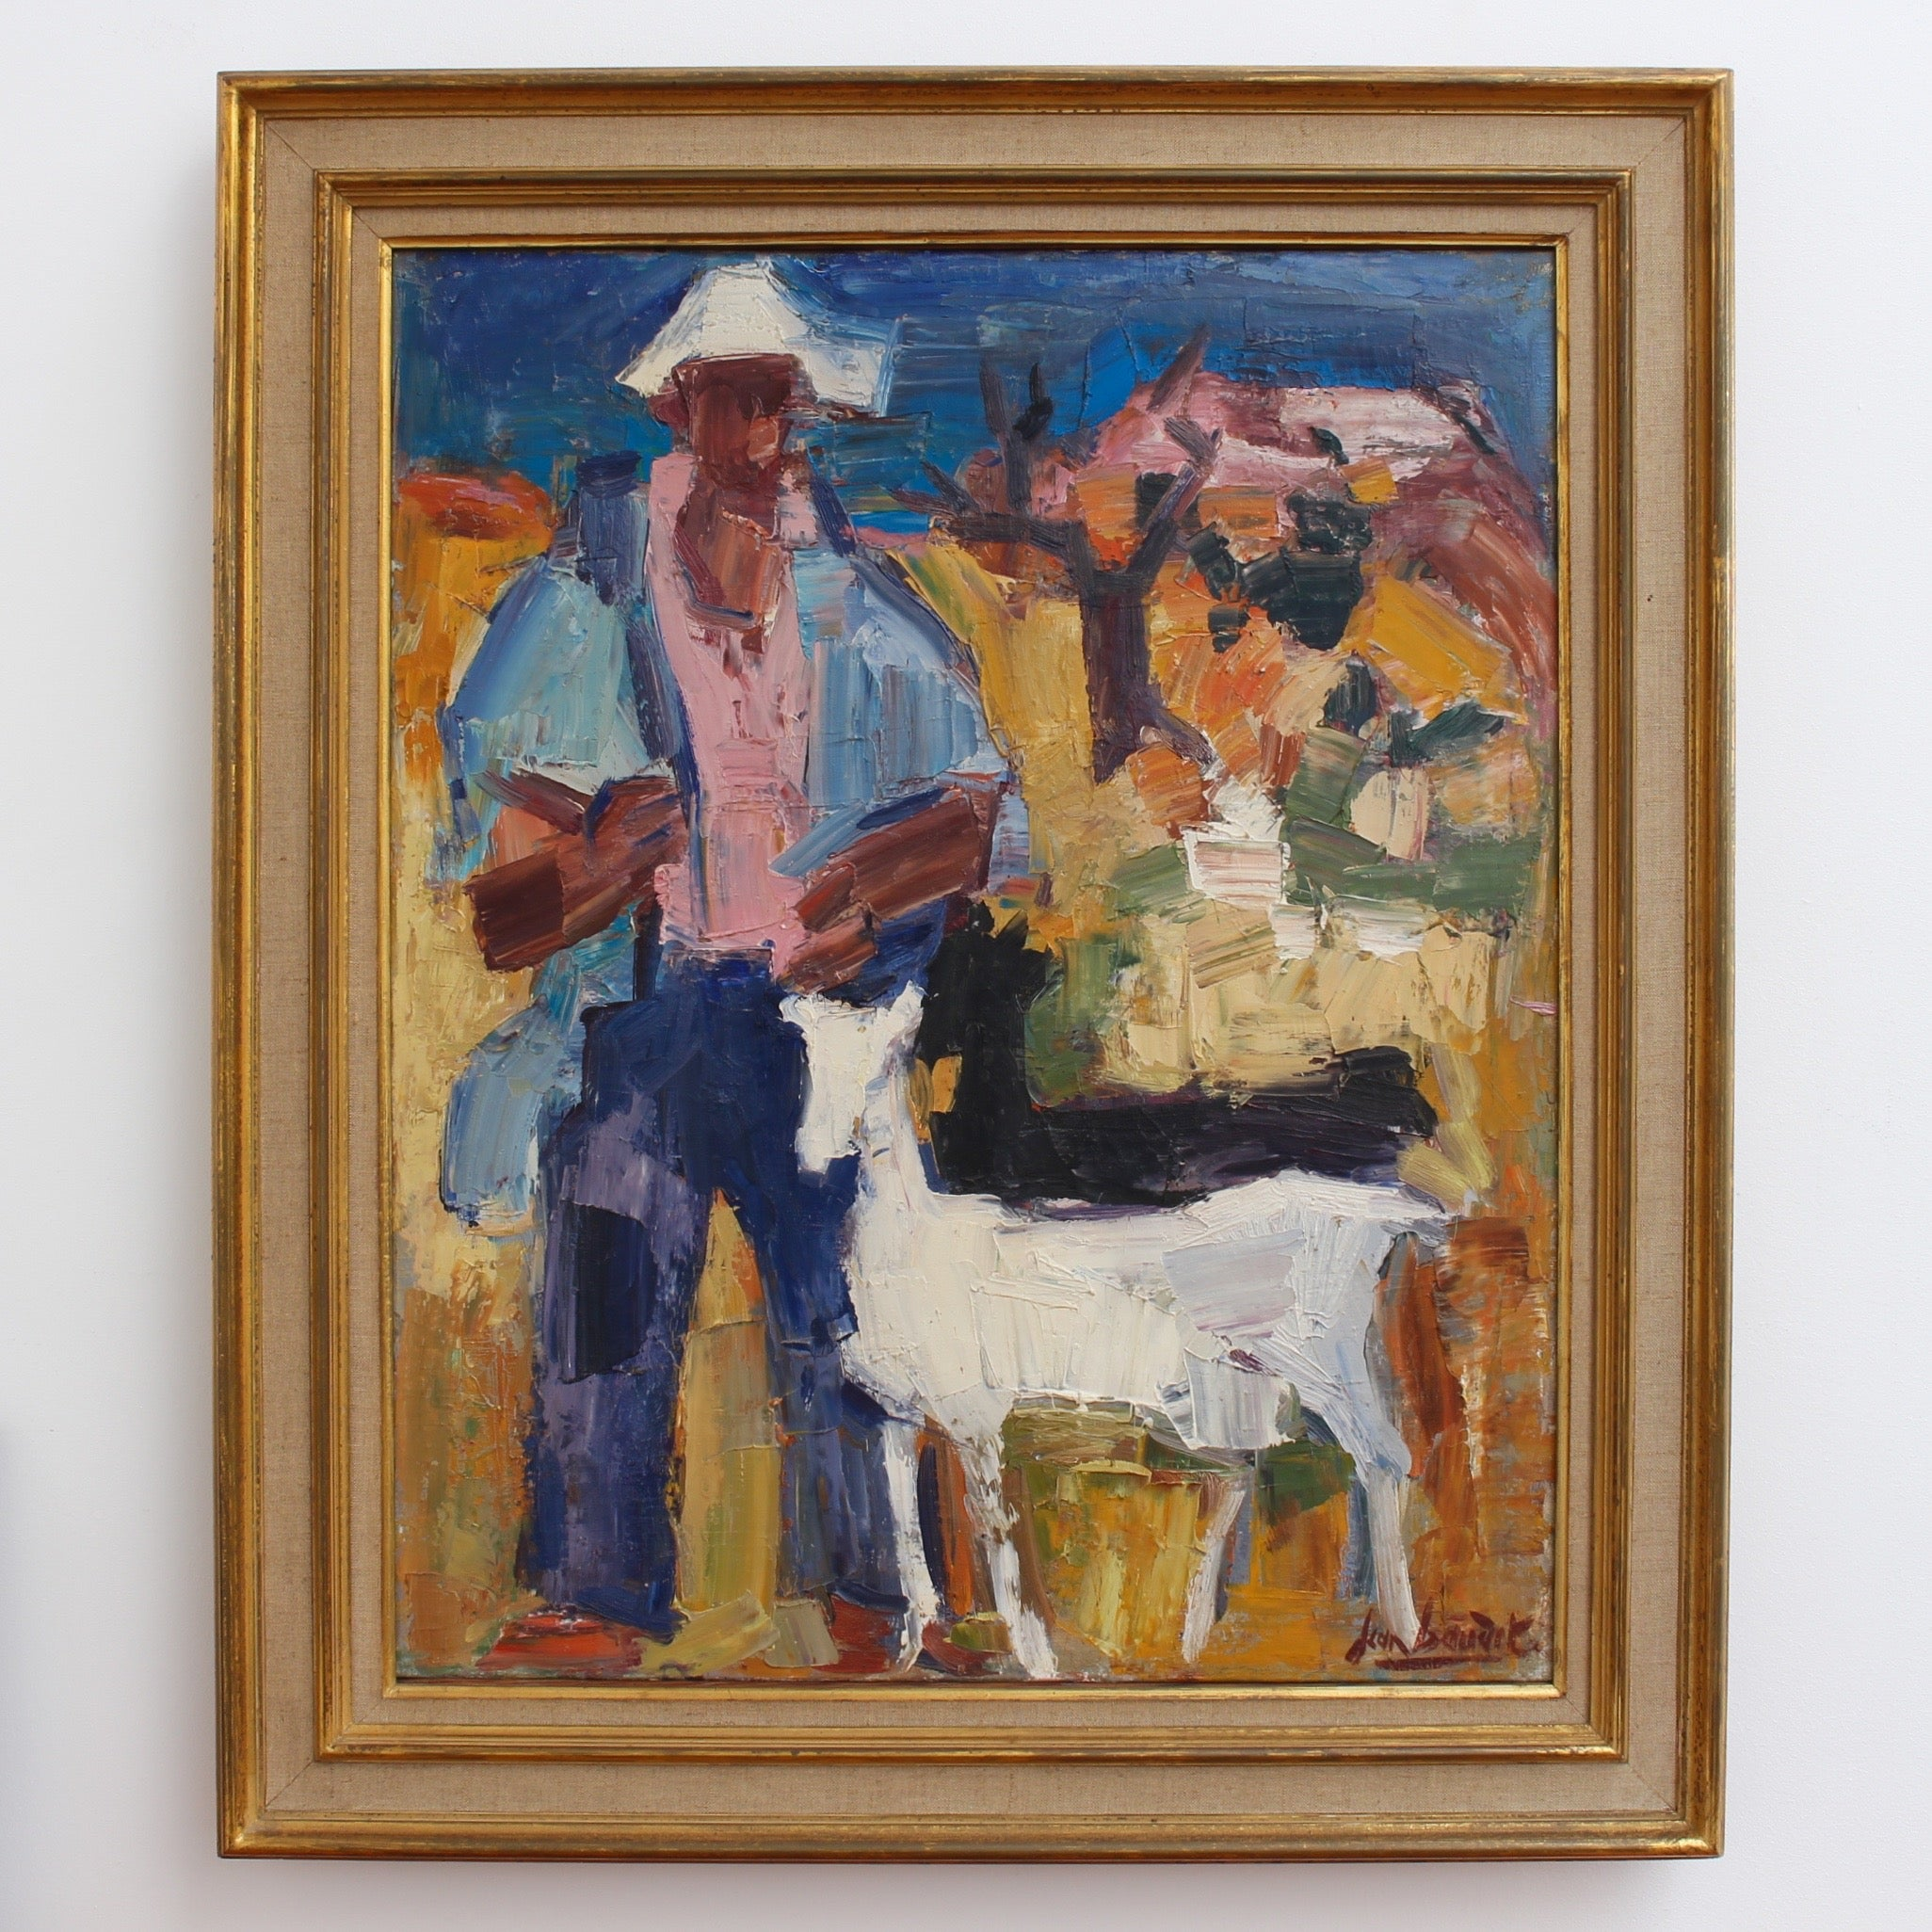 'The Spanish Shepherd' by Jean Baudet (1966)